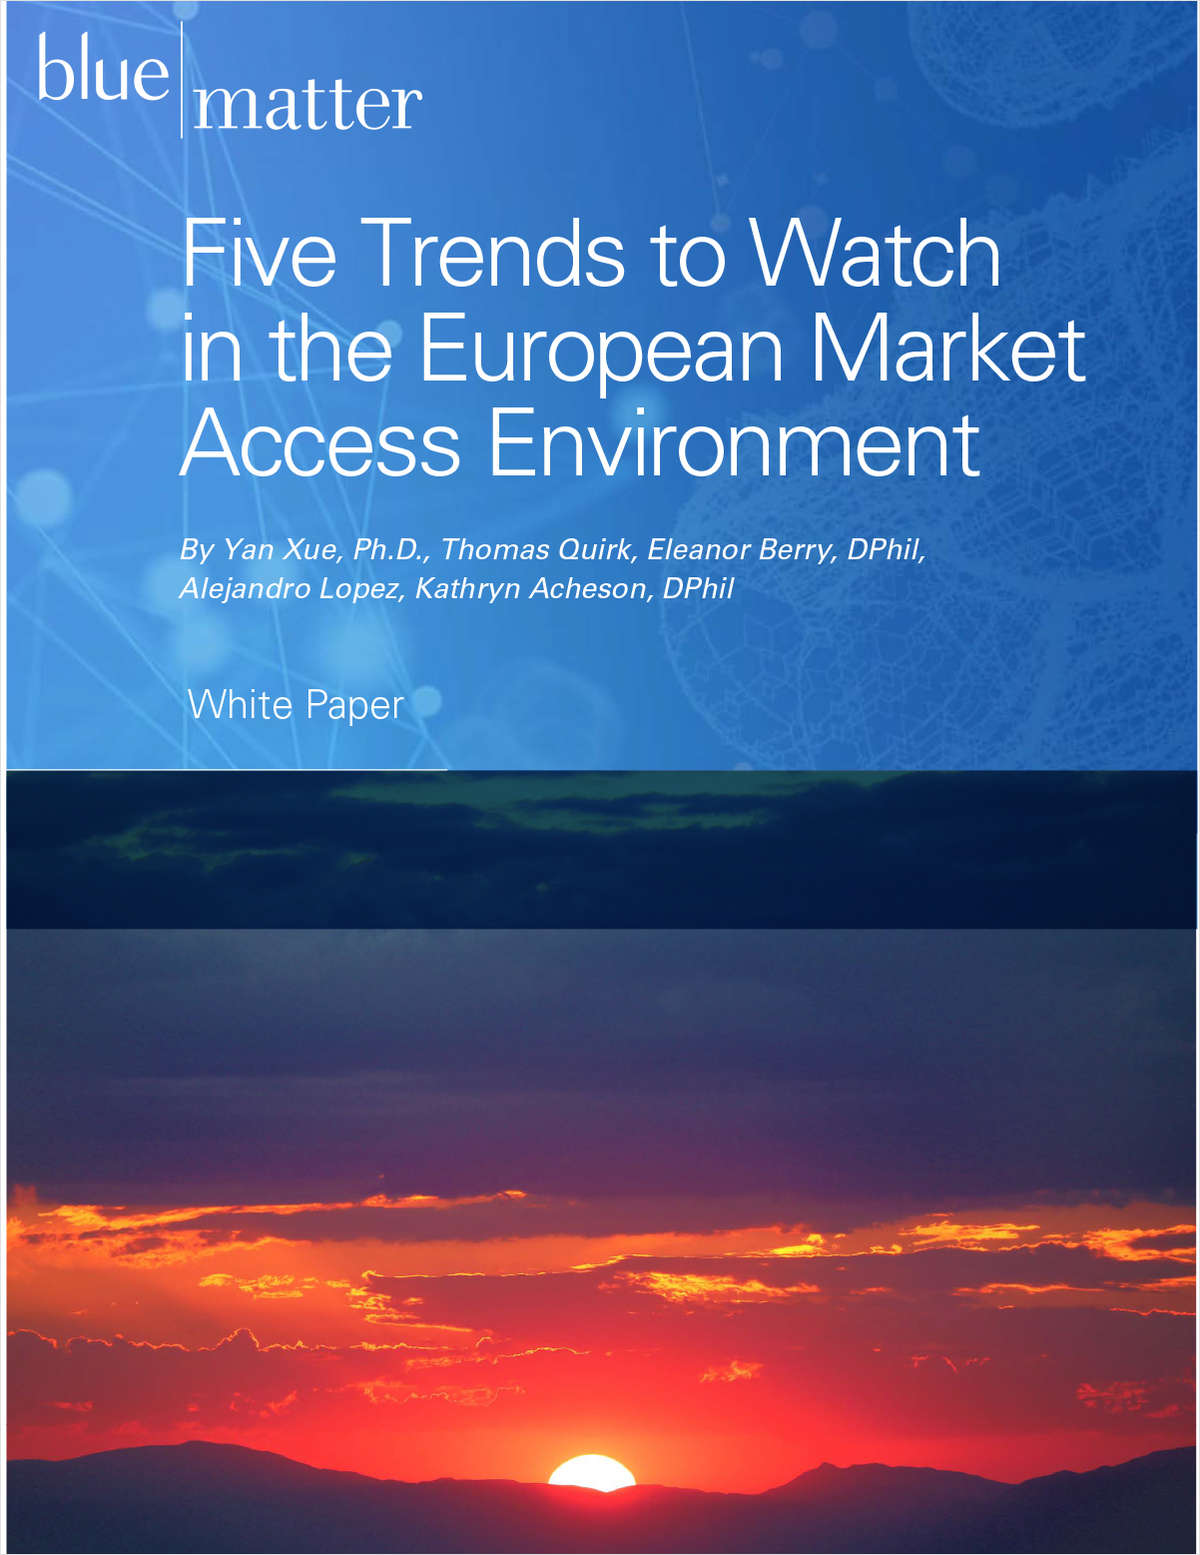 5 Trends to Watch in the European Market Access Environment